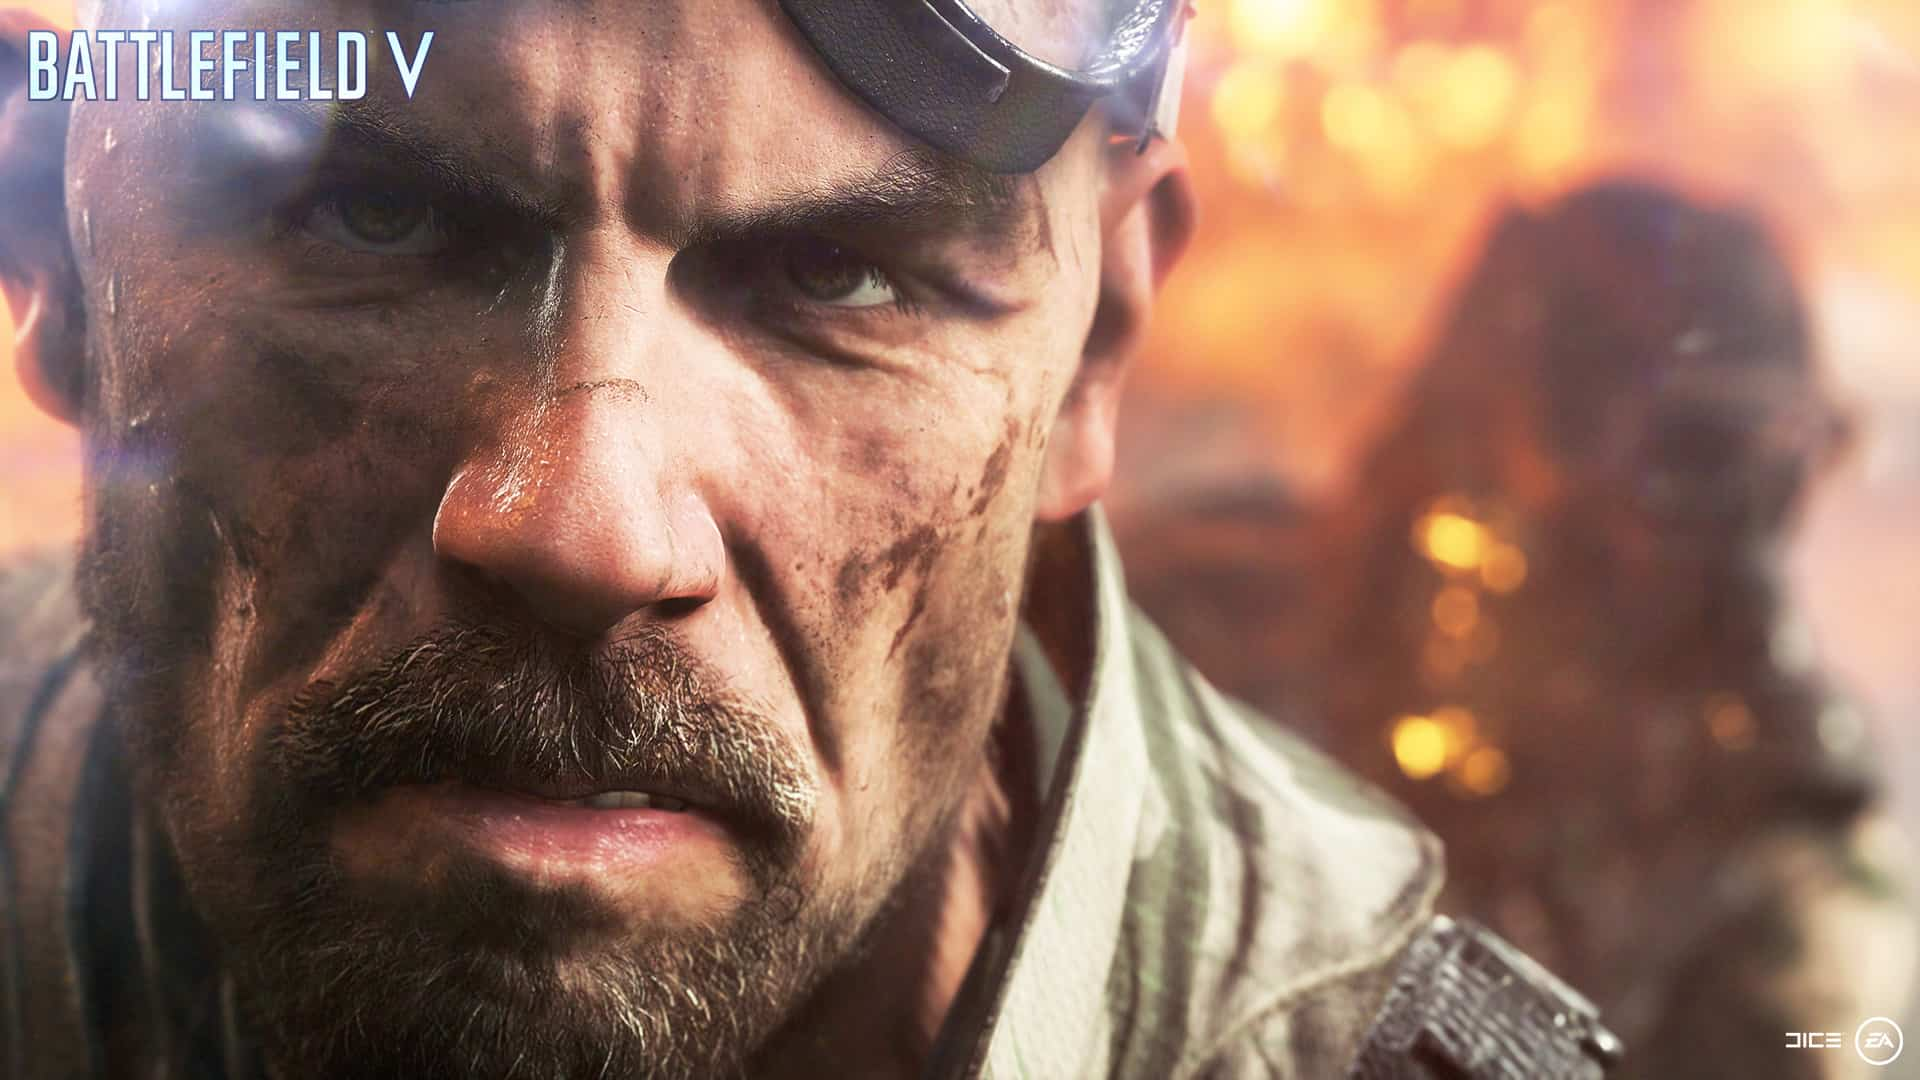 There Will Be No Battlefield 5 Battlepacks or Loot Boxes